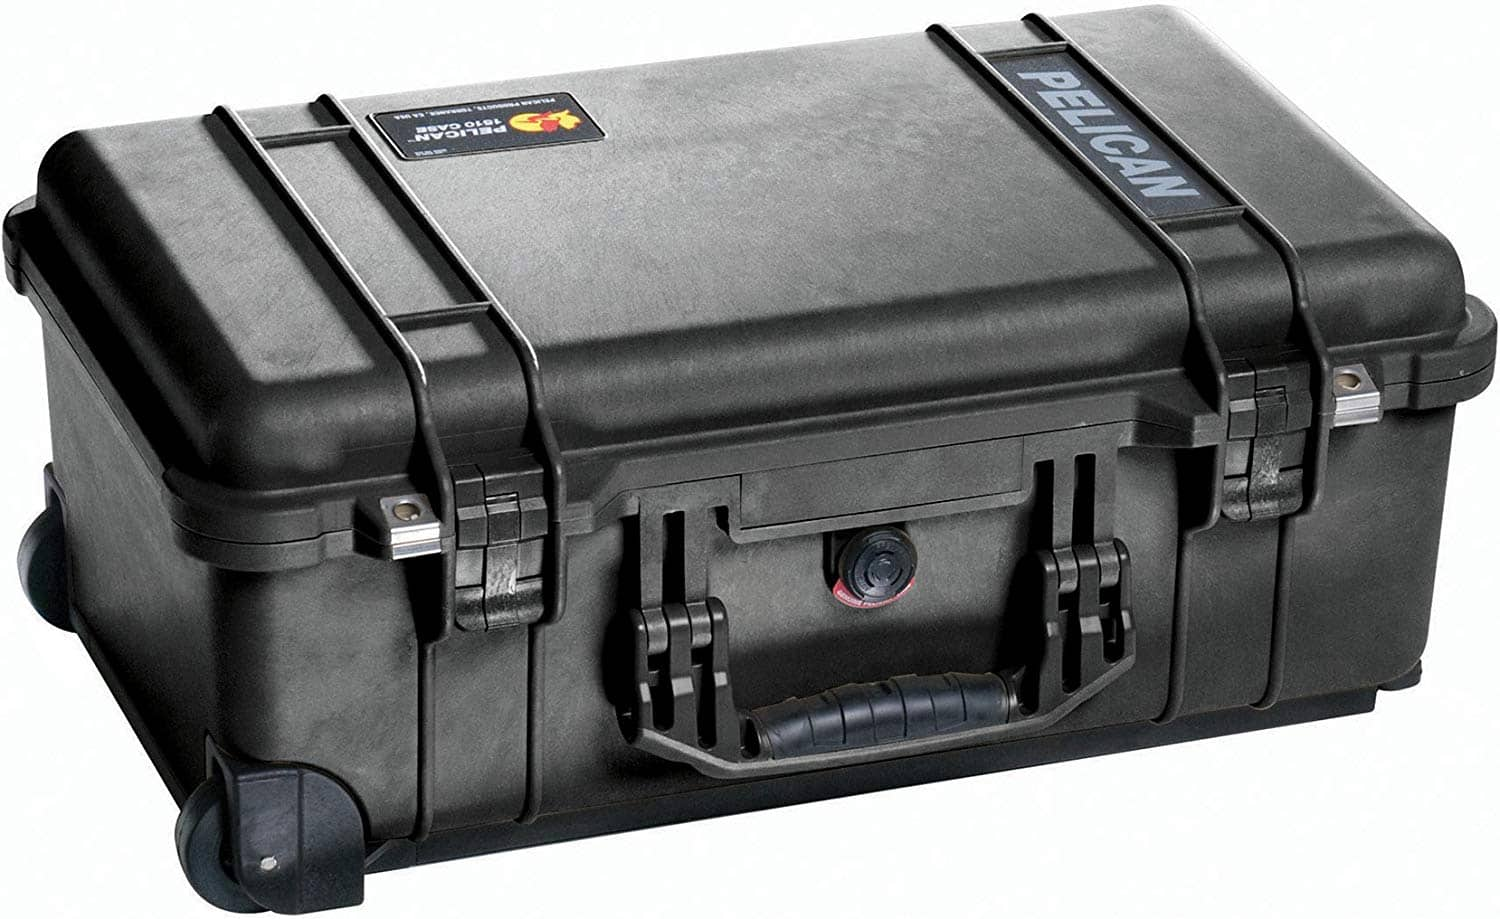 Pelican 1510 Case With Padded Dividers (Black) $149.62 + Free Shipping valid for Amazon Prime Members